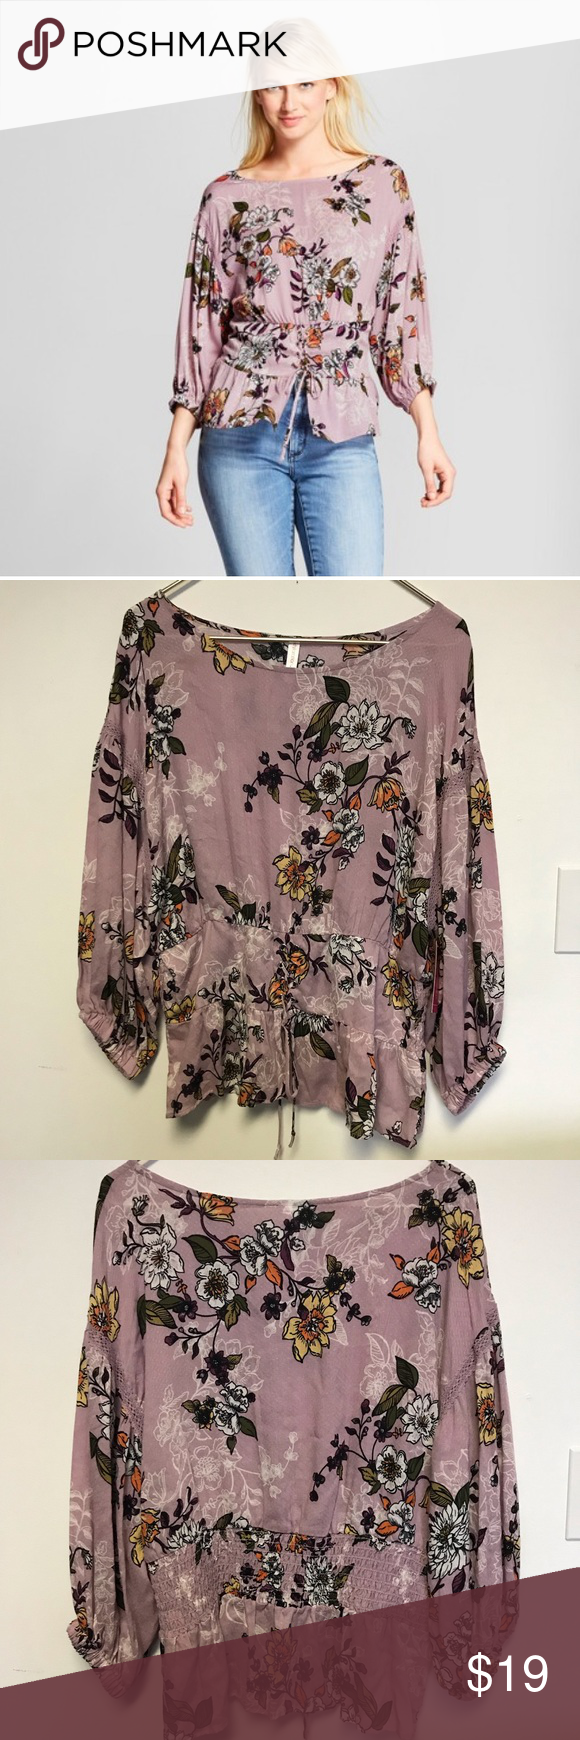 New! Lilac purple boho peasant top blouse floral New with